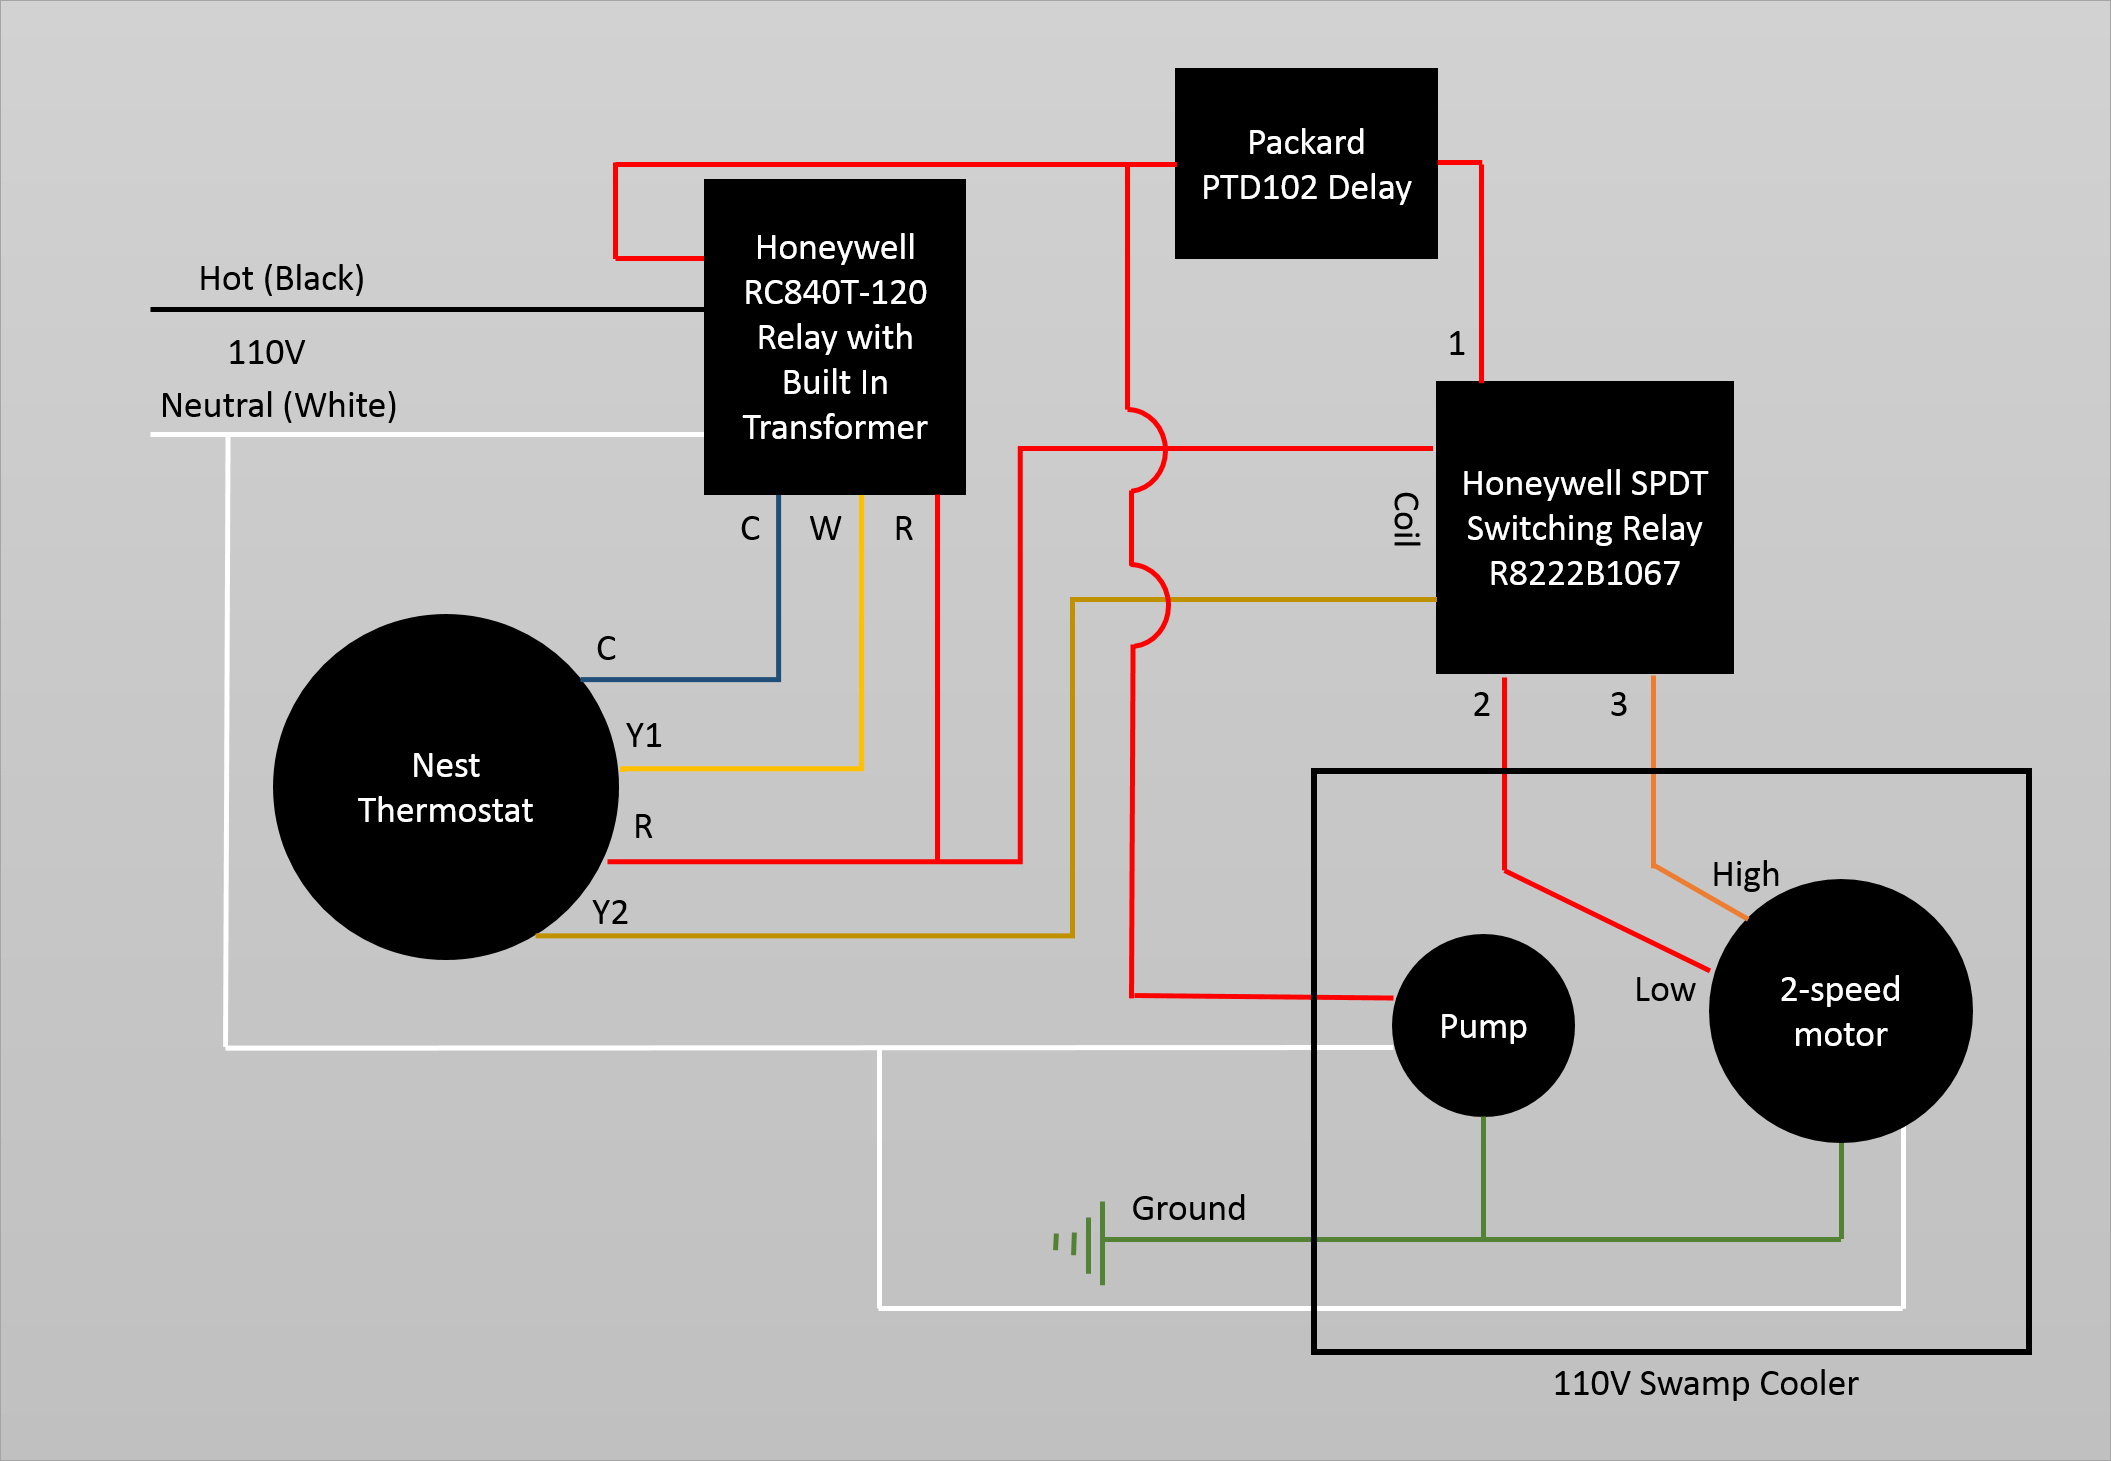 Nest Thermostat Wiring Diagram Heat Pump - All Wiring Diagram - Nest Thermostat Wiring Diagram York